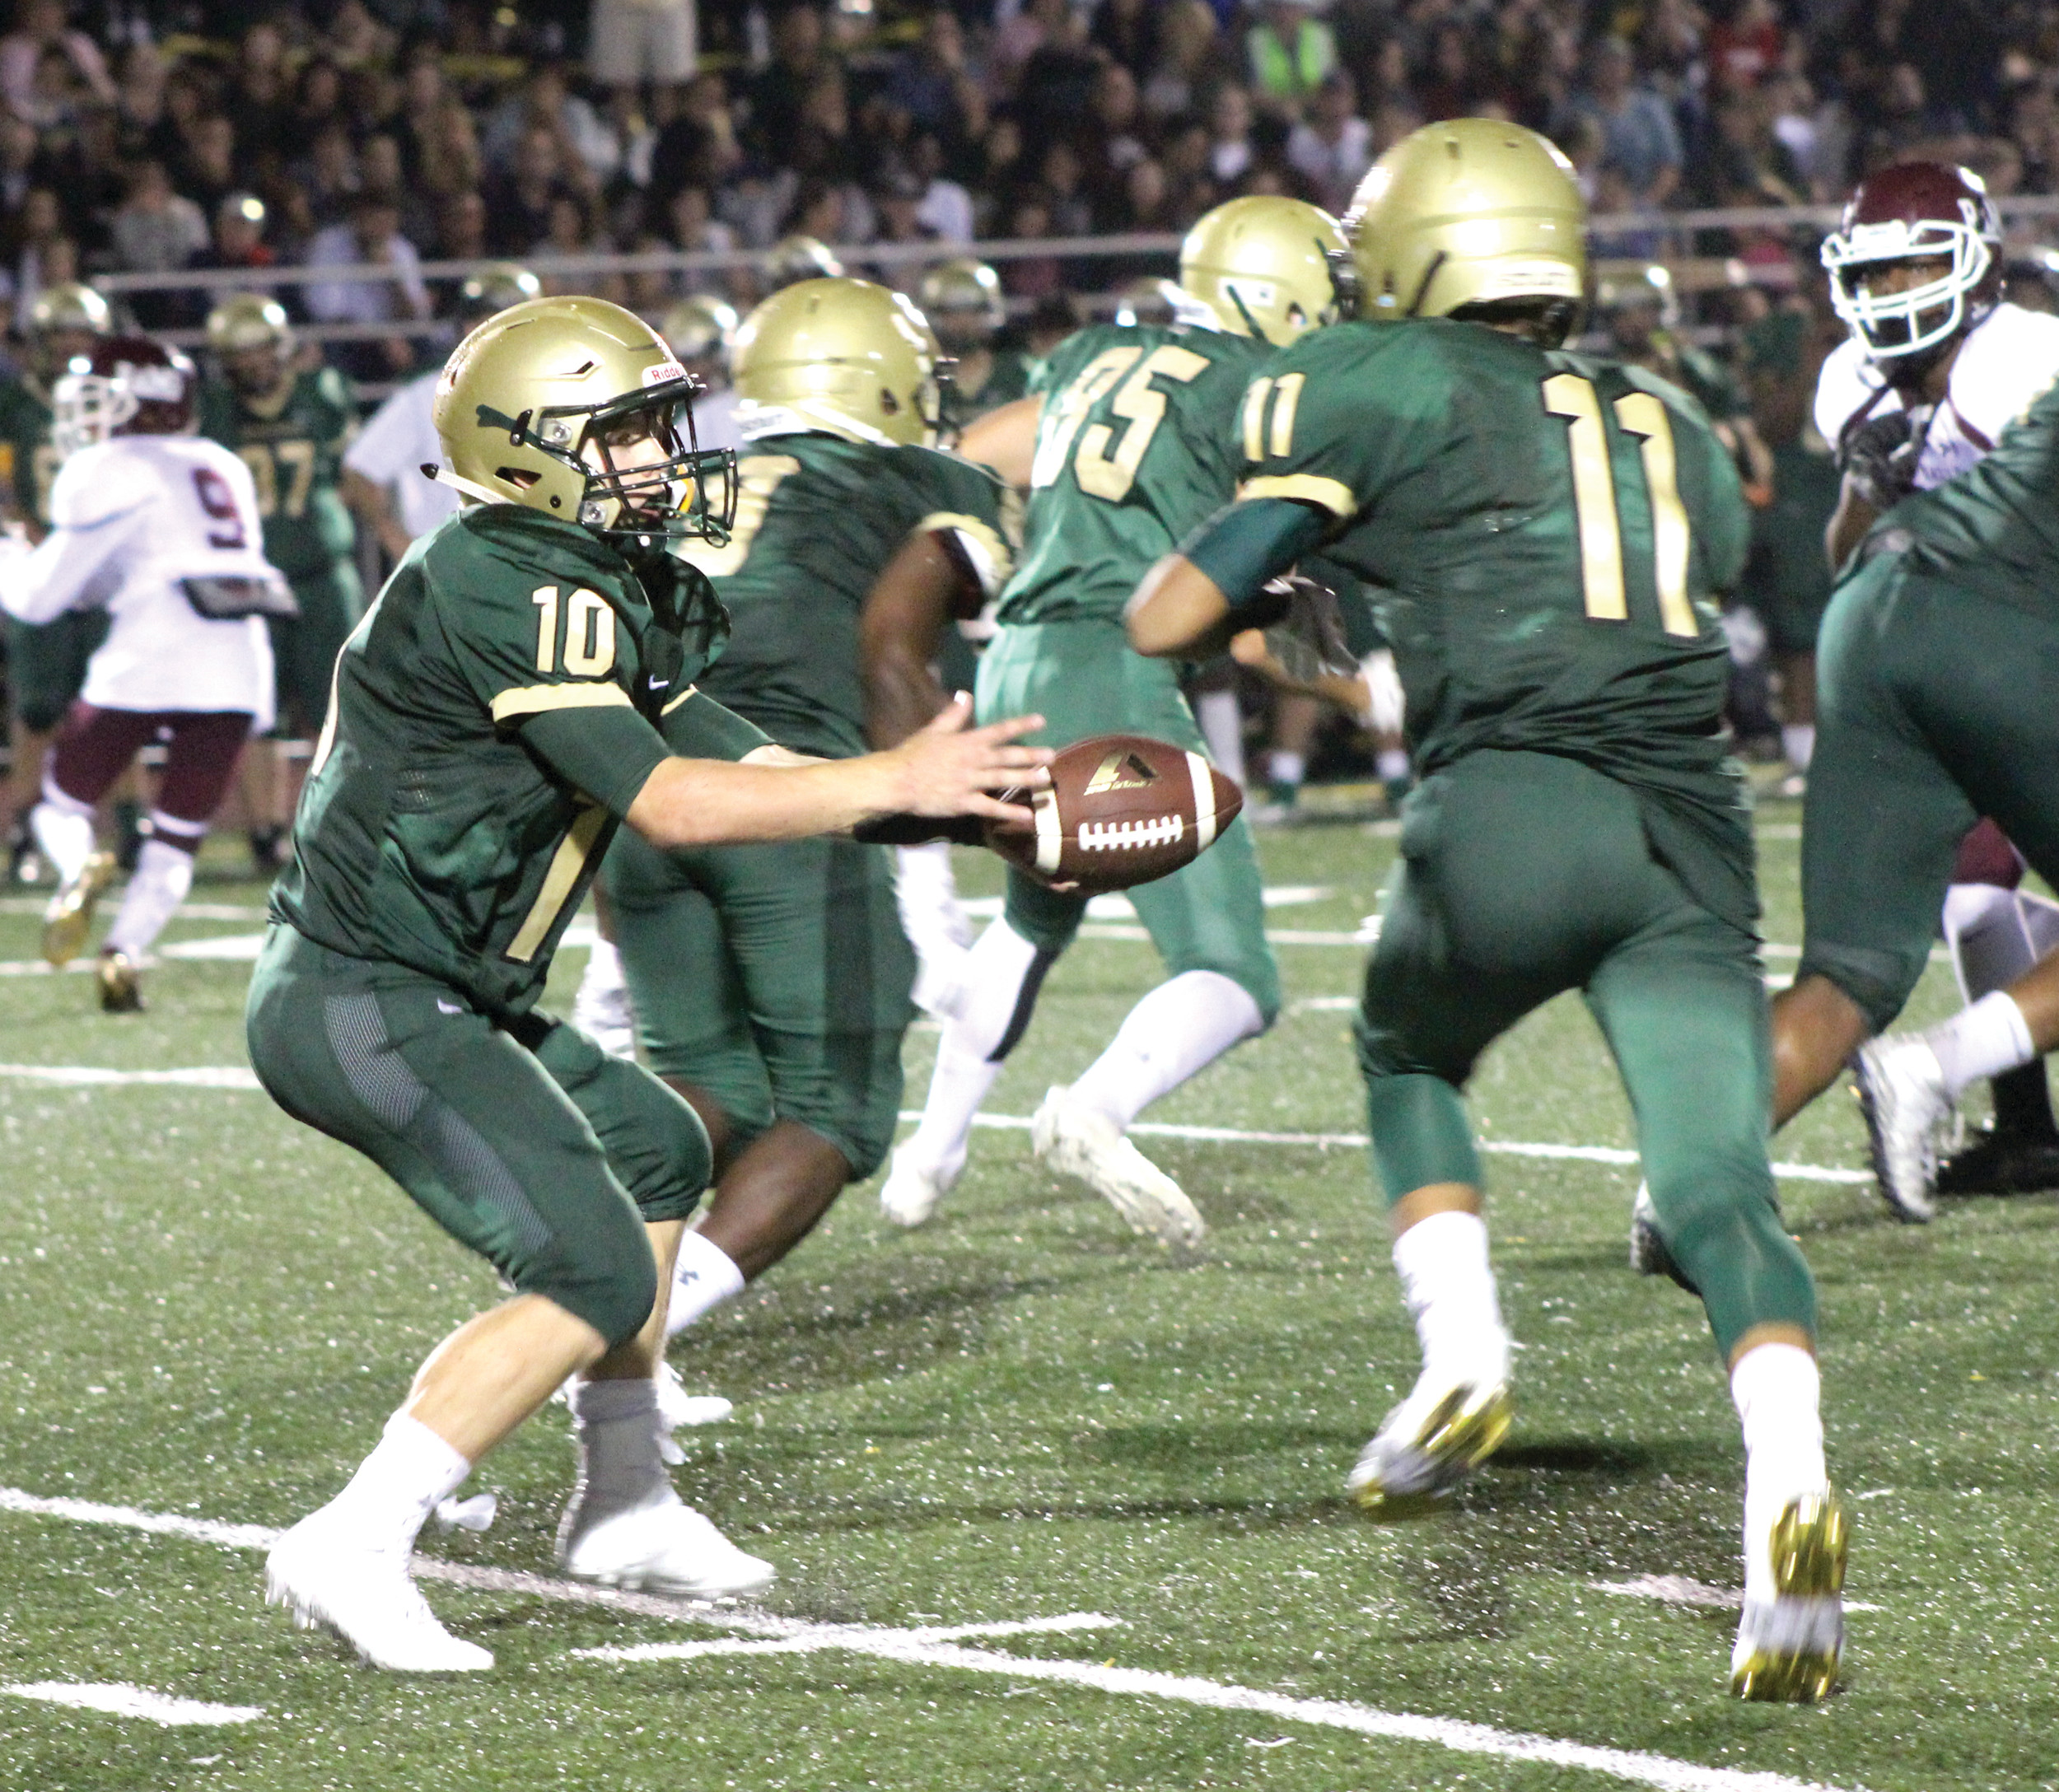 Tom Comella rushed for one touchdown and threw for another in Hendricken's win over La Salle.